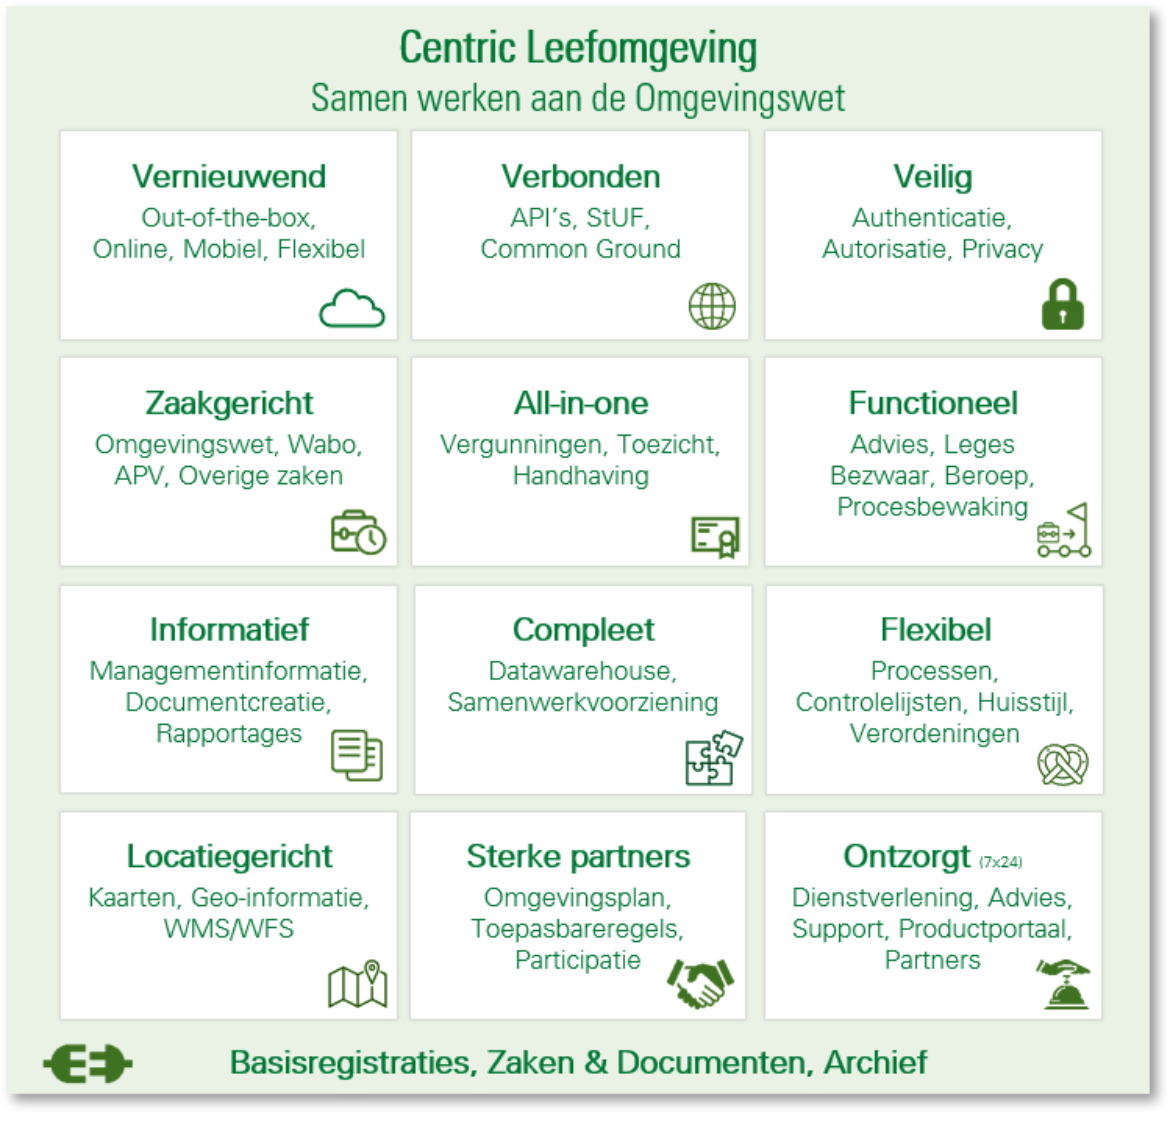 Centric Leefomgeving all in one 2